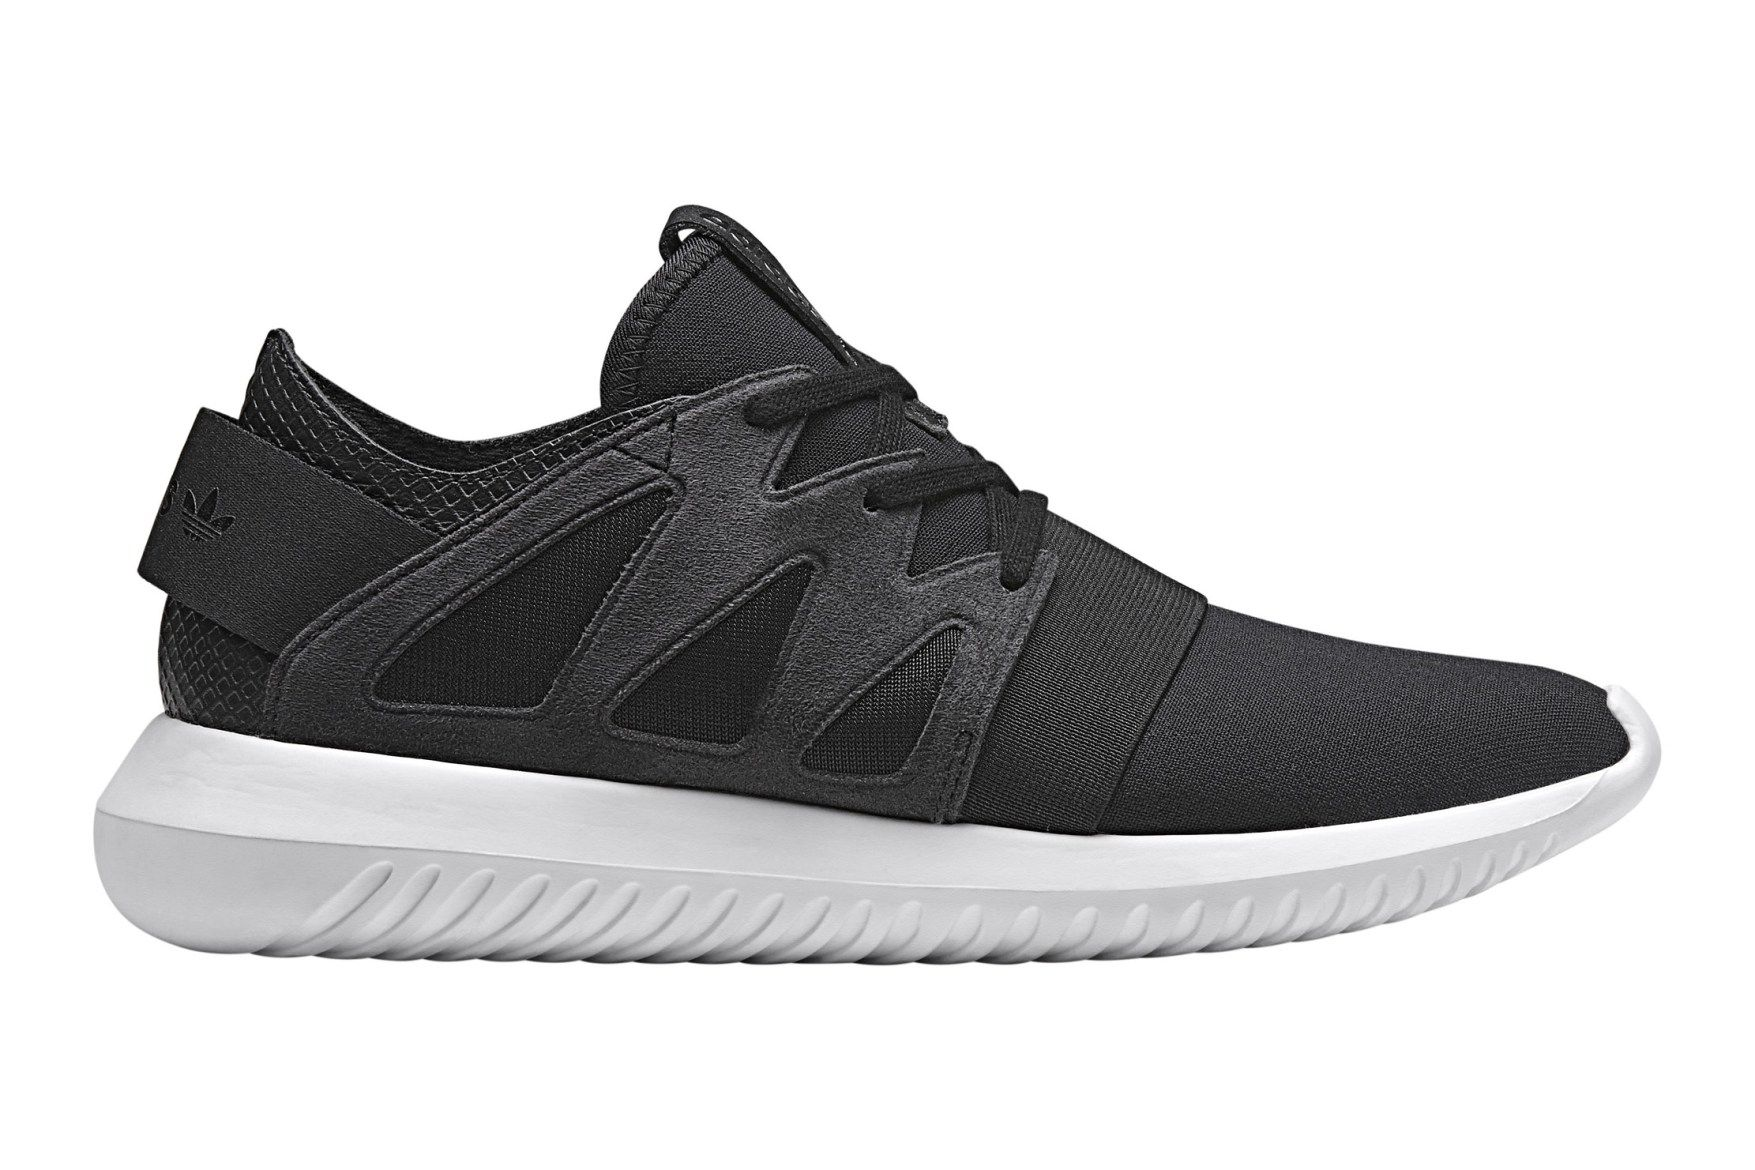 Buy Adidas Los Angeles from £44.99 (Today) – Best Deals on